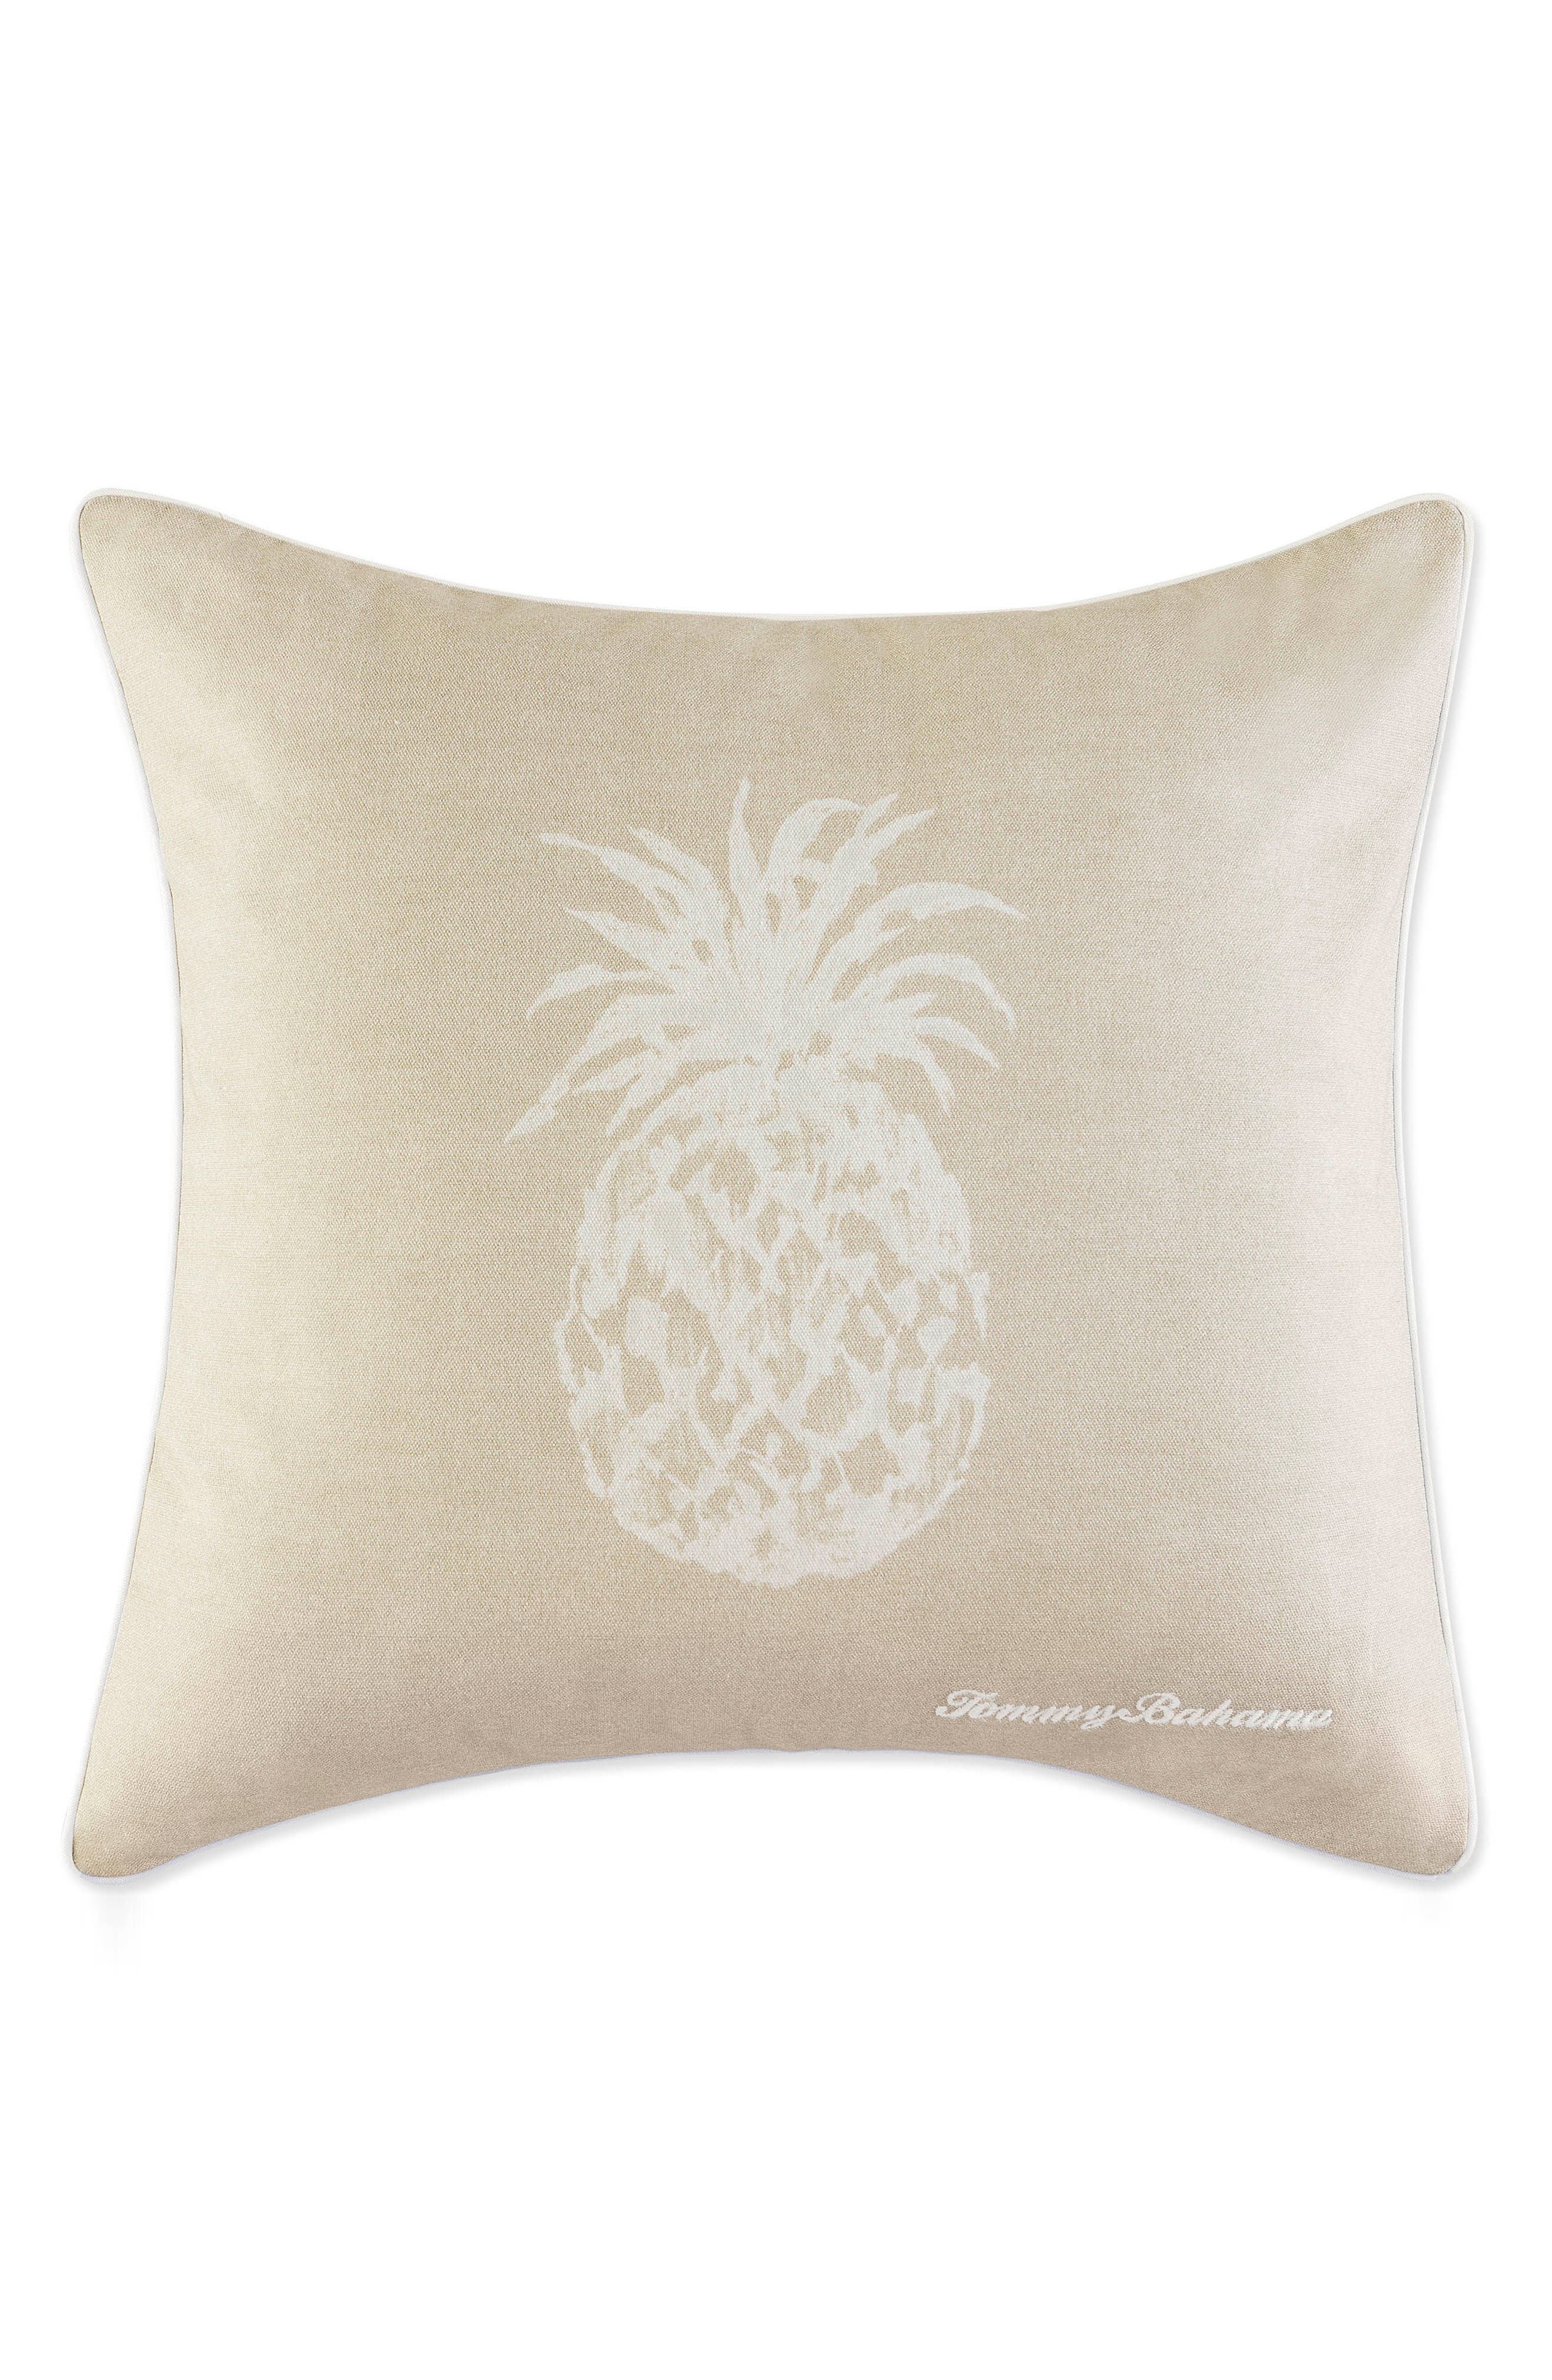 Main Image - Tommy Bahama Pineapple Accent Pillow